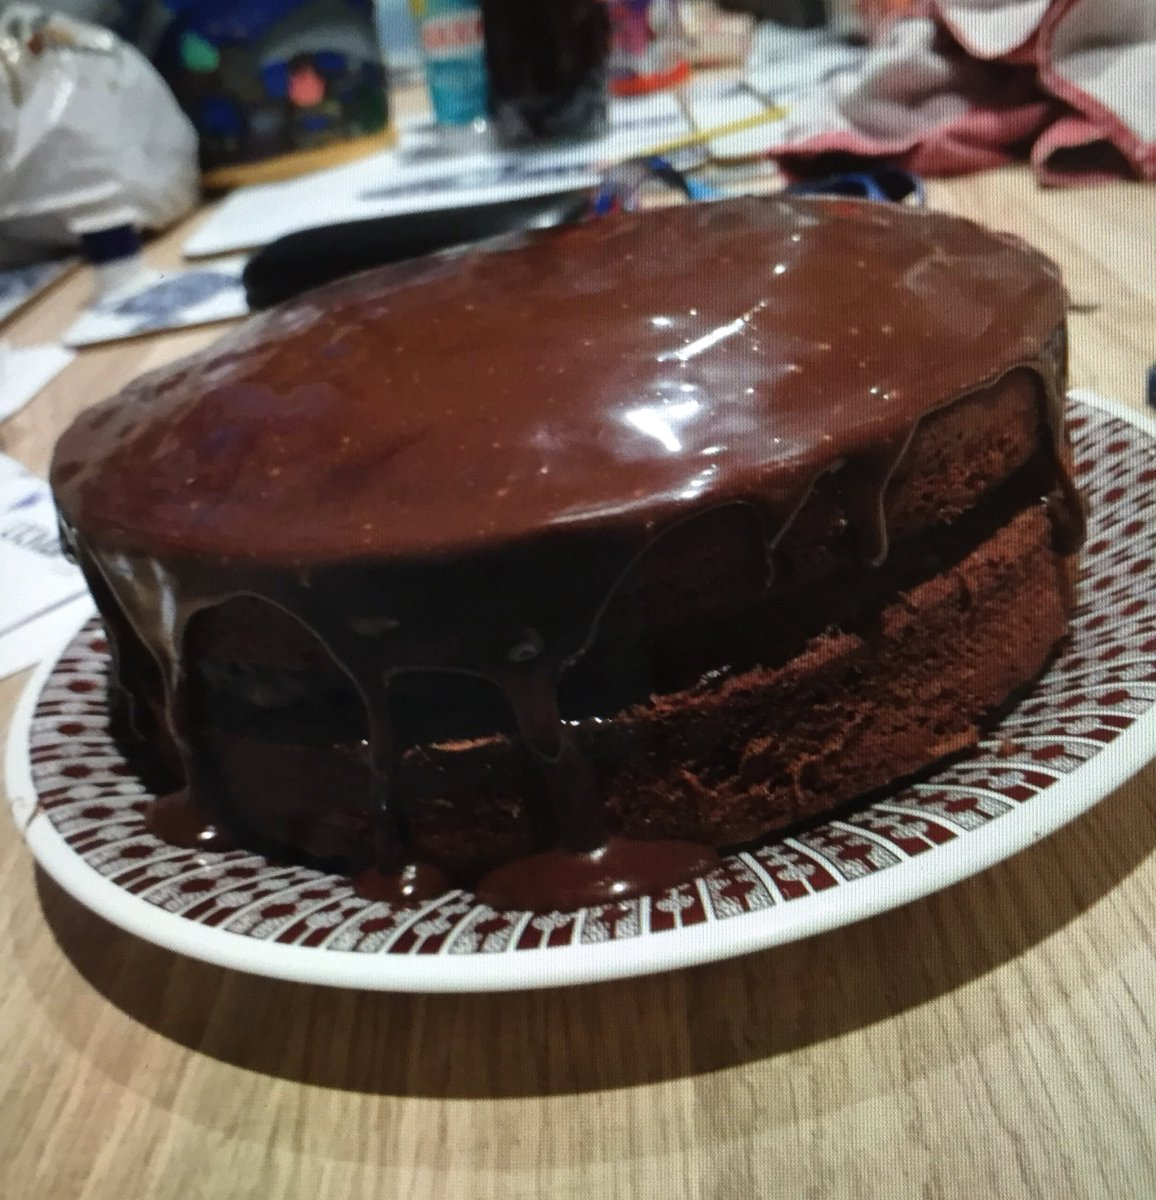 My #dofebronze participants are busy at home working on their skills! #yummy #bakeoff #chocolatecake pic.twitter.com/nHVURL32hS